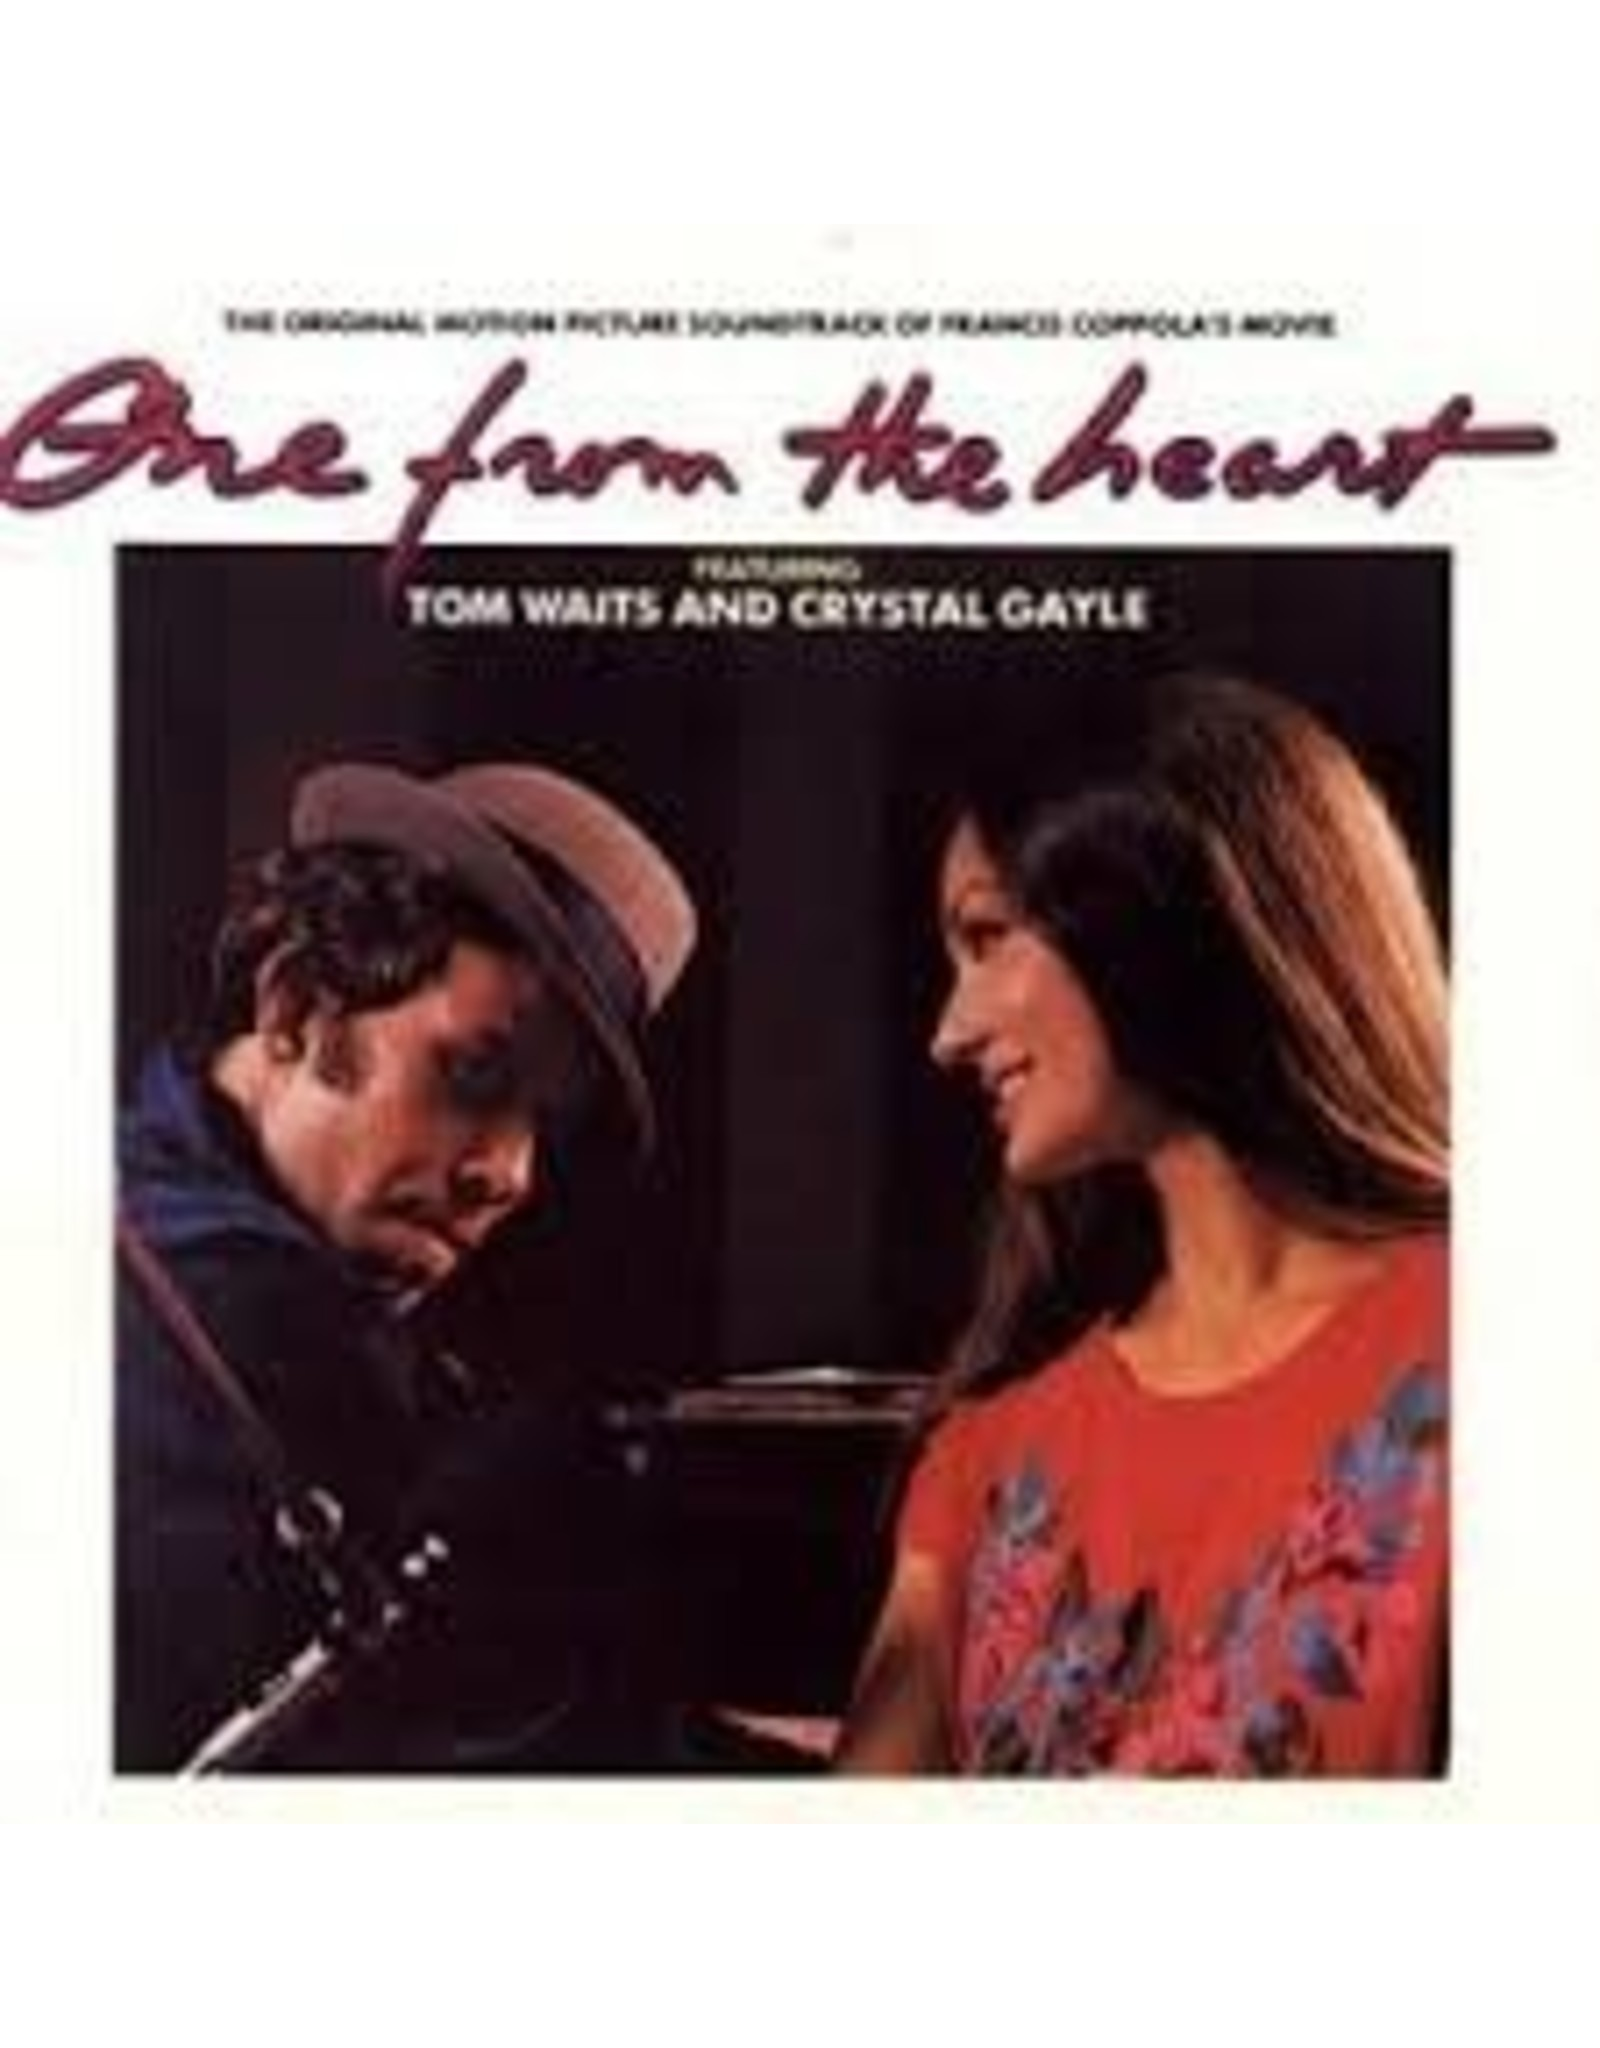 Vinyl Tom Waits & Crystal Gayle - One From The Heart